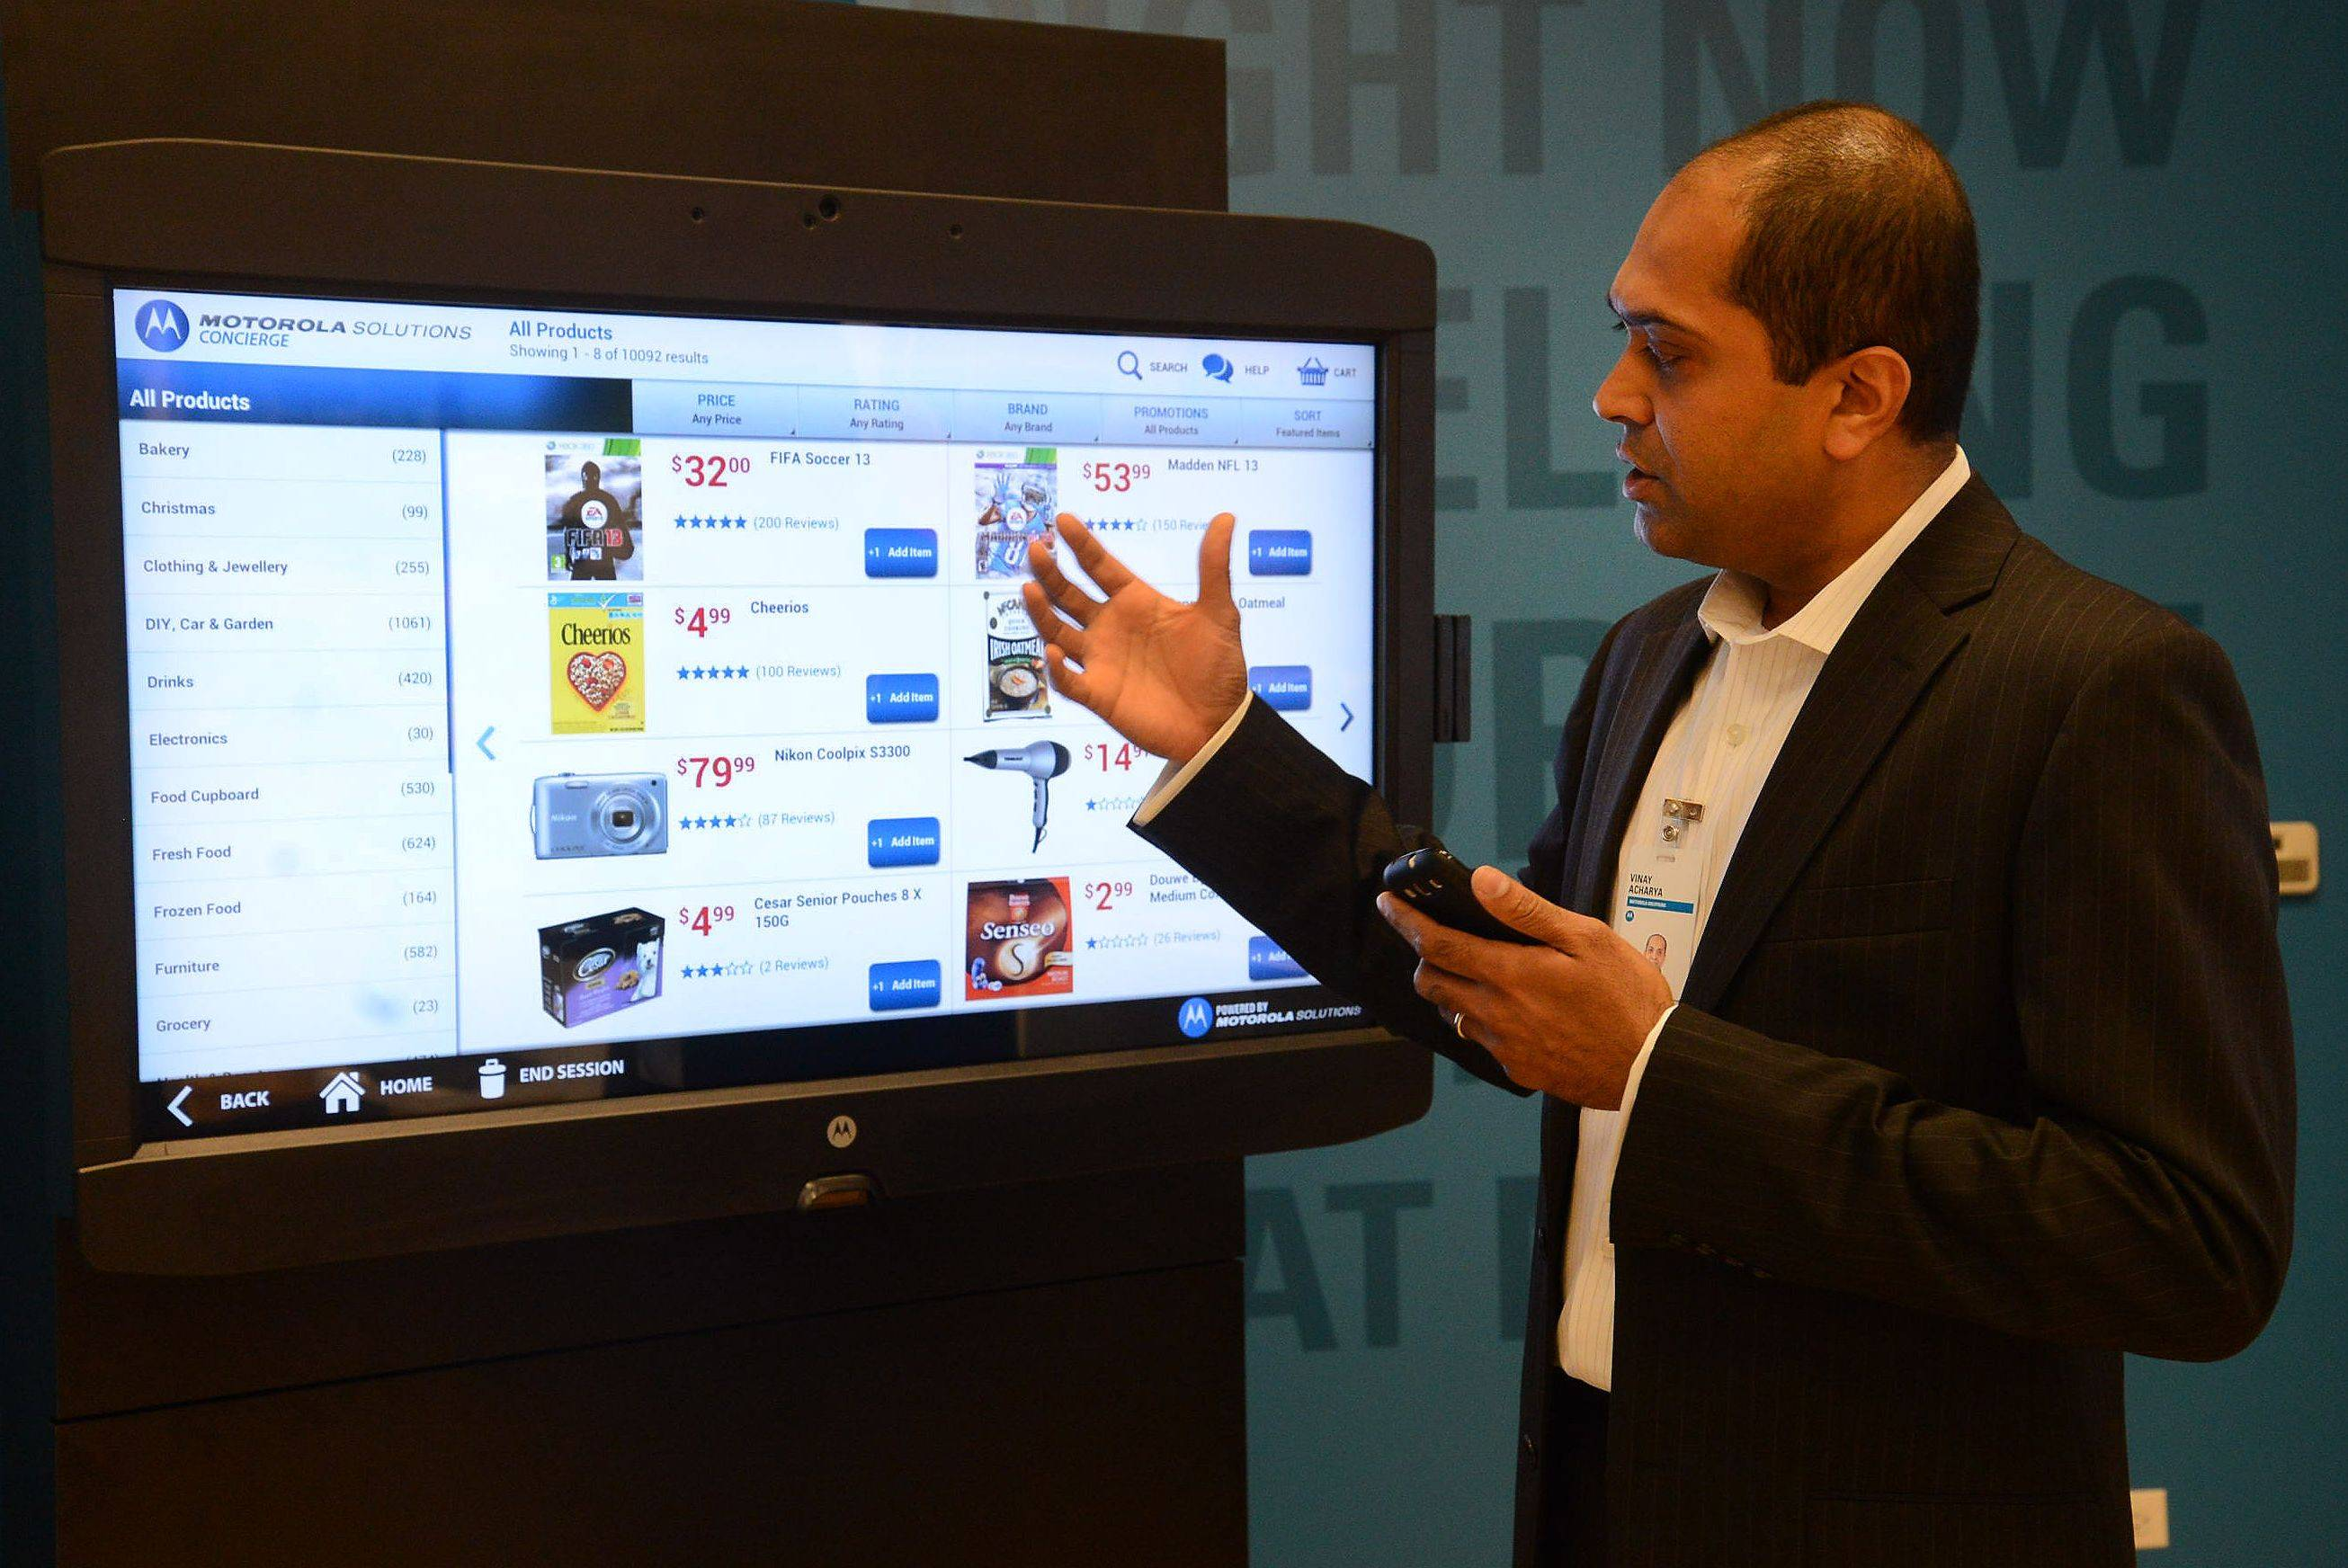 Vinay Acharya demonstrates Customer Concierge, where a customer can shop using a touch screen within a store, during Motorola Solutions Innovation Showcase 2013.